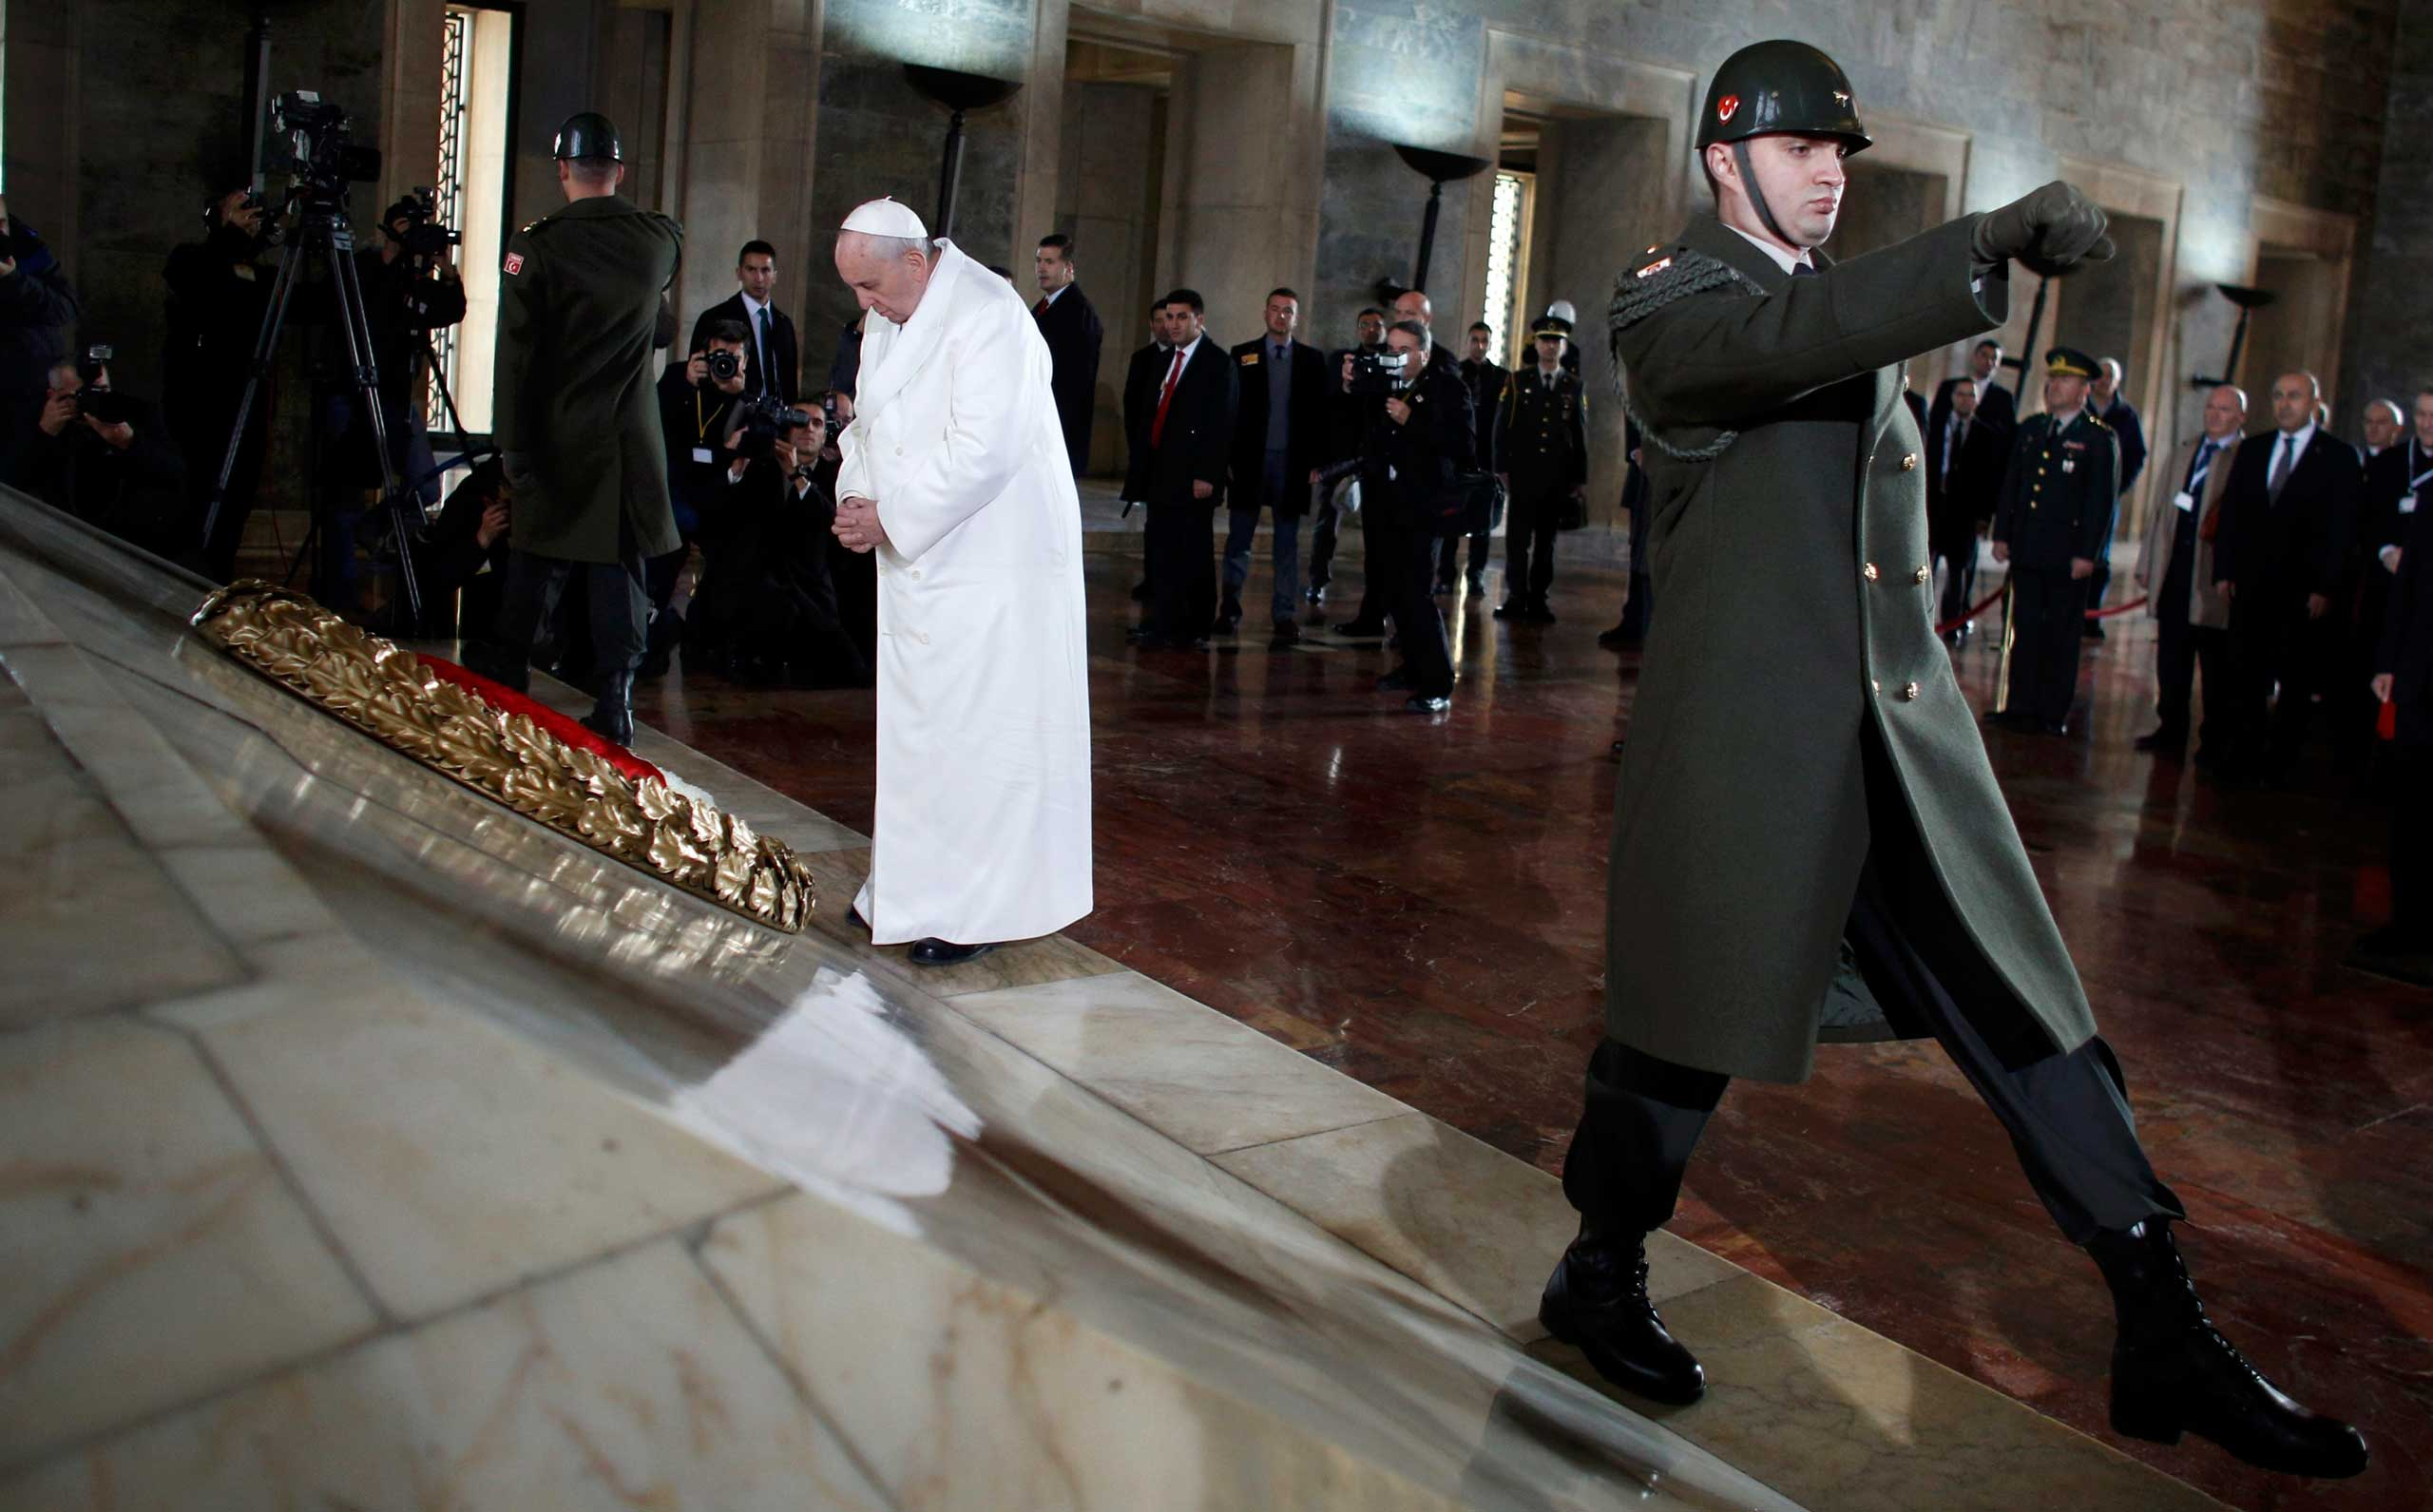 Nov. 28, 2014. Pope Francis lays wreaths at the mausoleum of Mustafa Kemal Ataturk, founder of modern Turkey, in Ankara. Pope Francis visits Turkey with the delicate mission of strengthening ties with Muslim leaders while condemning violence against Christians and other minorities in the Middle East.